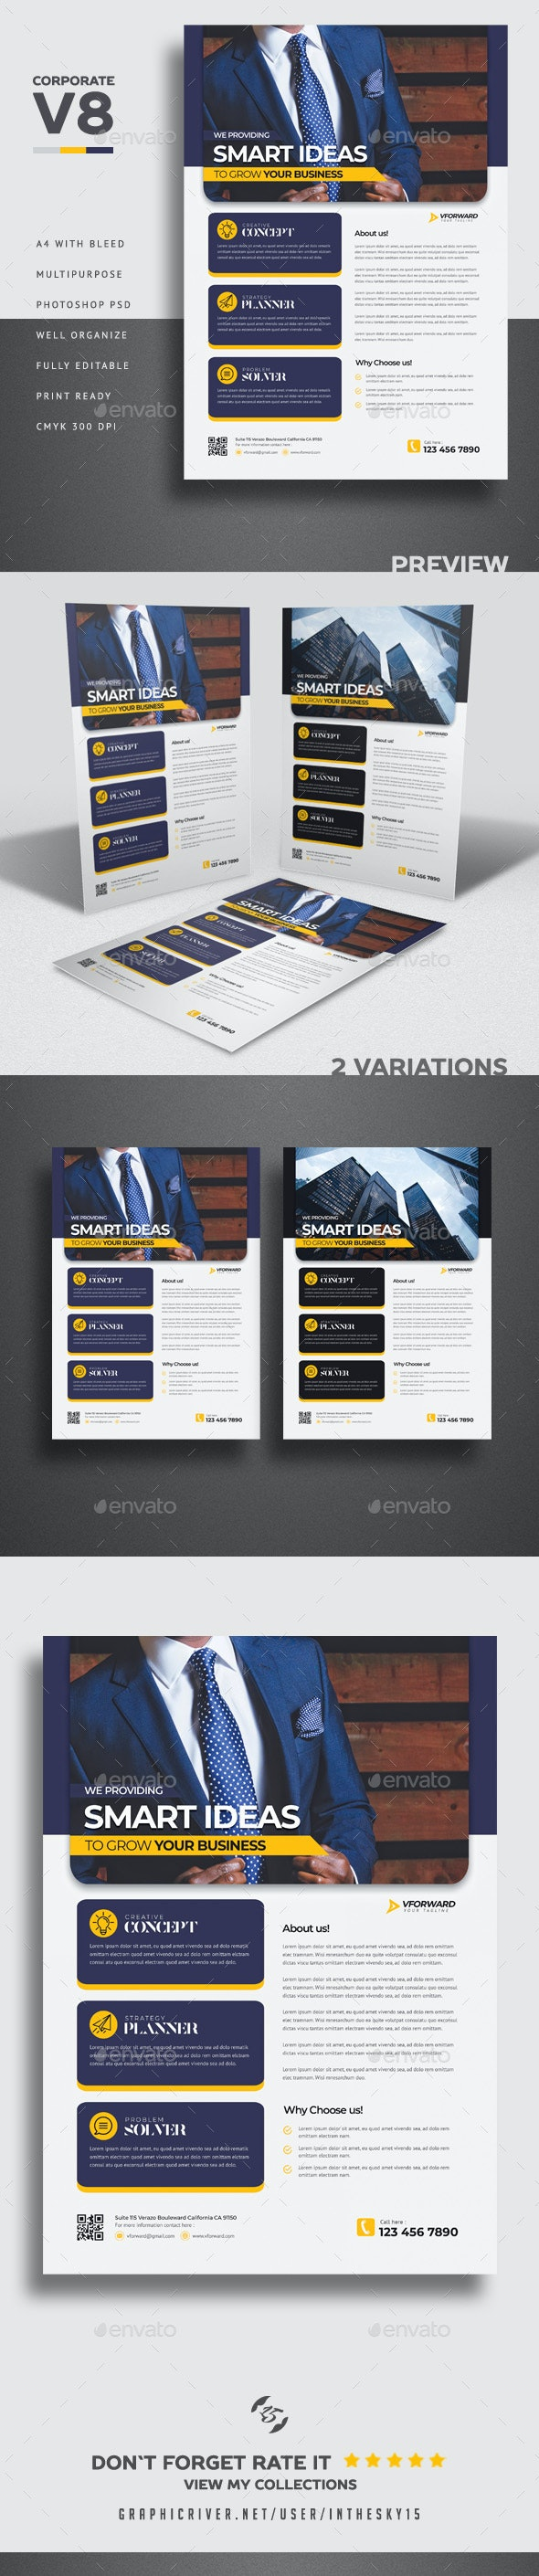 Corporate V8 Flyer - Corporate Flyers